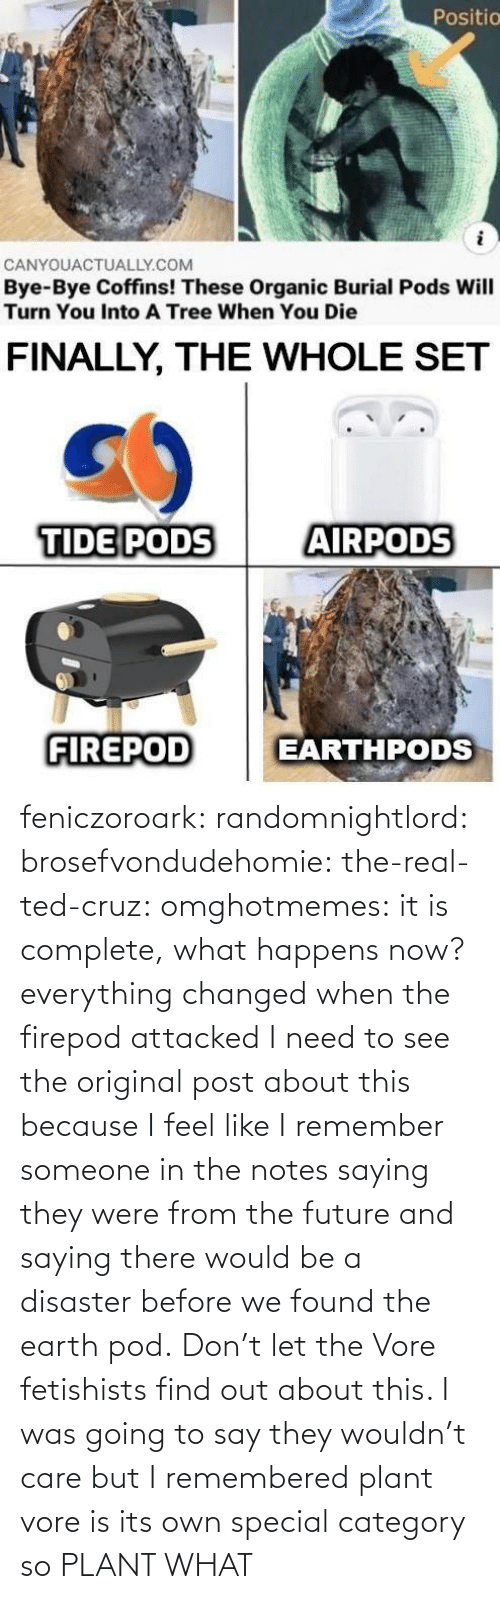 The Real: feniczoroark:  randomnightlord:  brosefvondudehomie: the-real-ted-cruz:  omghotmemes: it is complete, what happens now? everything changed when the firepod attacked    I need to see the original post about this because I feel like I remember someone in the notes saying they were from the future and saying there would be a disaster before we found the earth pod.    Don't let the Vore fetishists find out about this.    I was going to say they wouldn't care but I remembered plant vore is its own special category so   PLANT WHAT